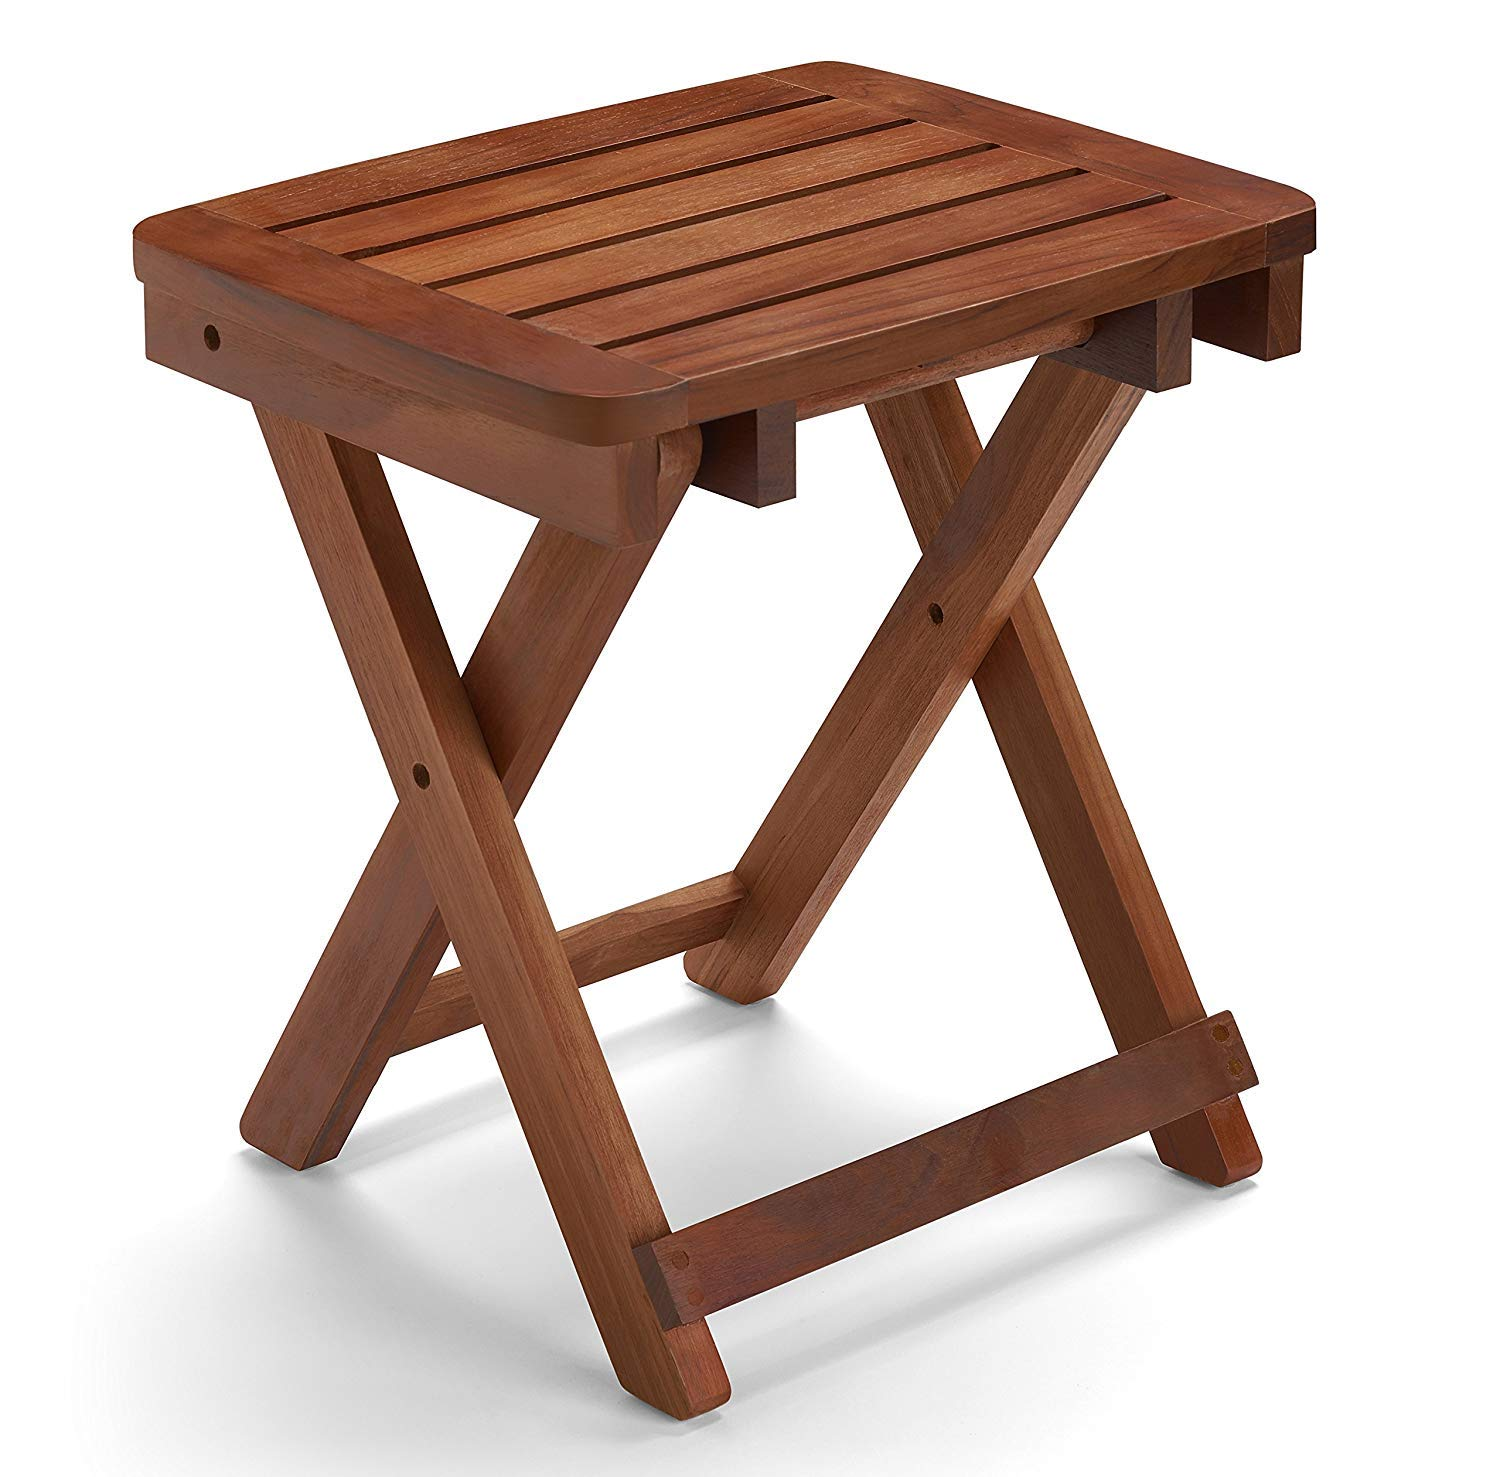 Amazon Com Conair Home Folding Teak Shower Seat Beauty